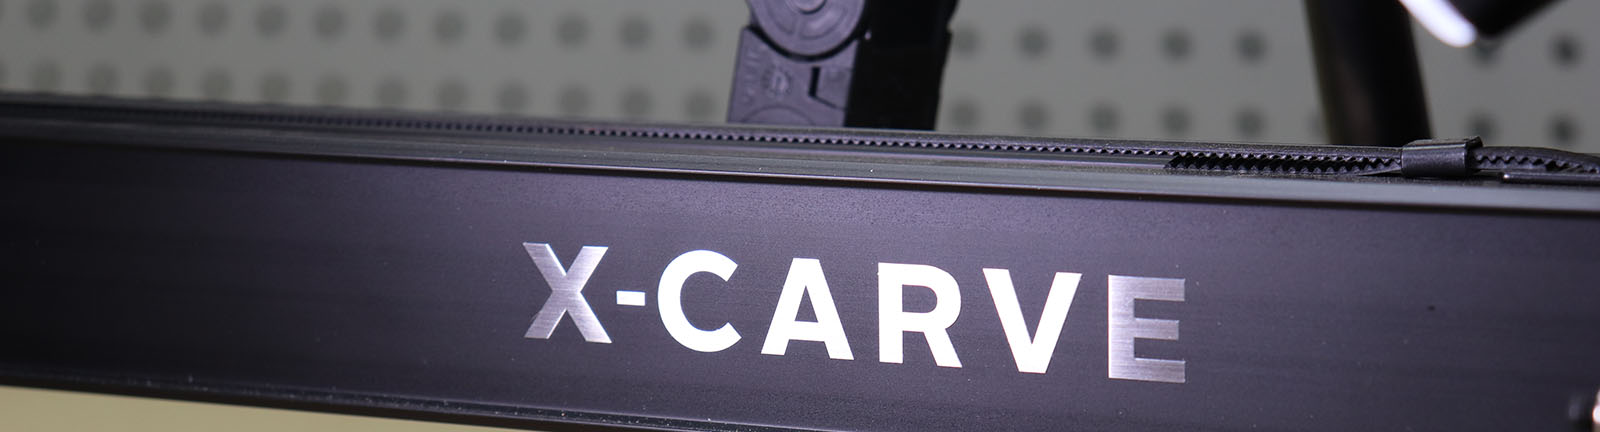 2017 NEW X-Carve From Inventables – Review and 1st Project